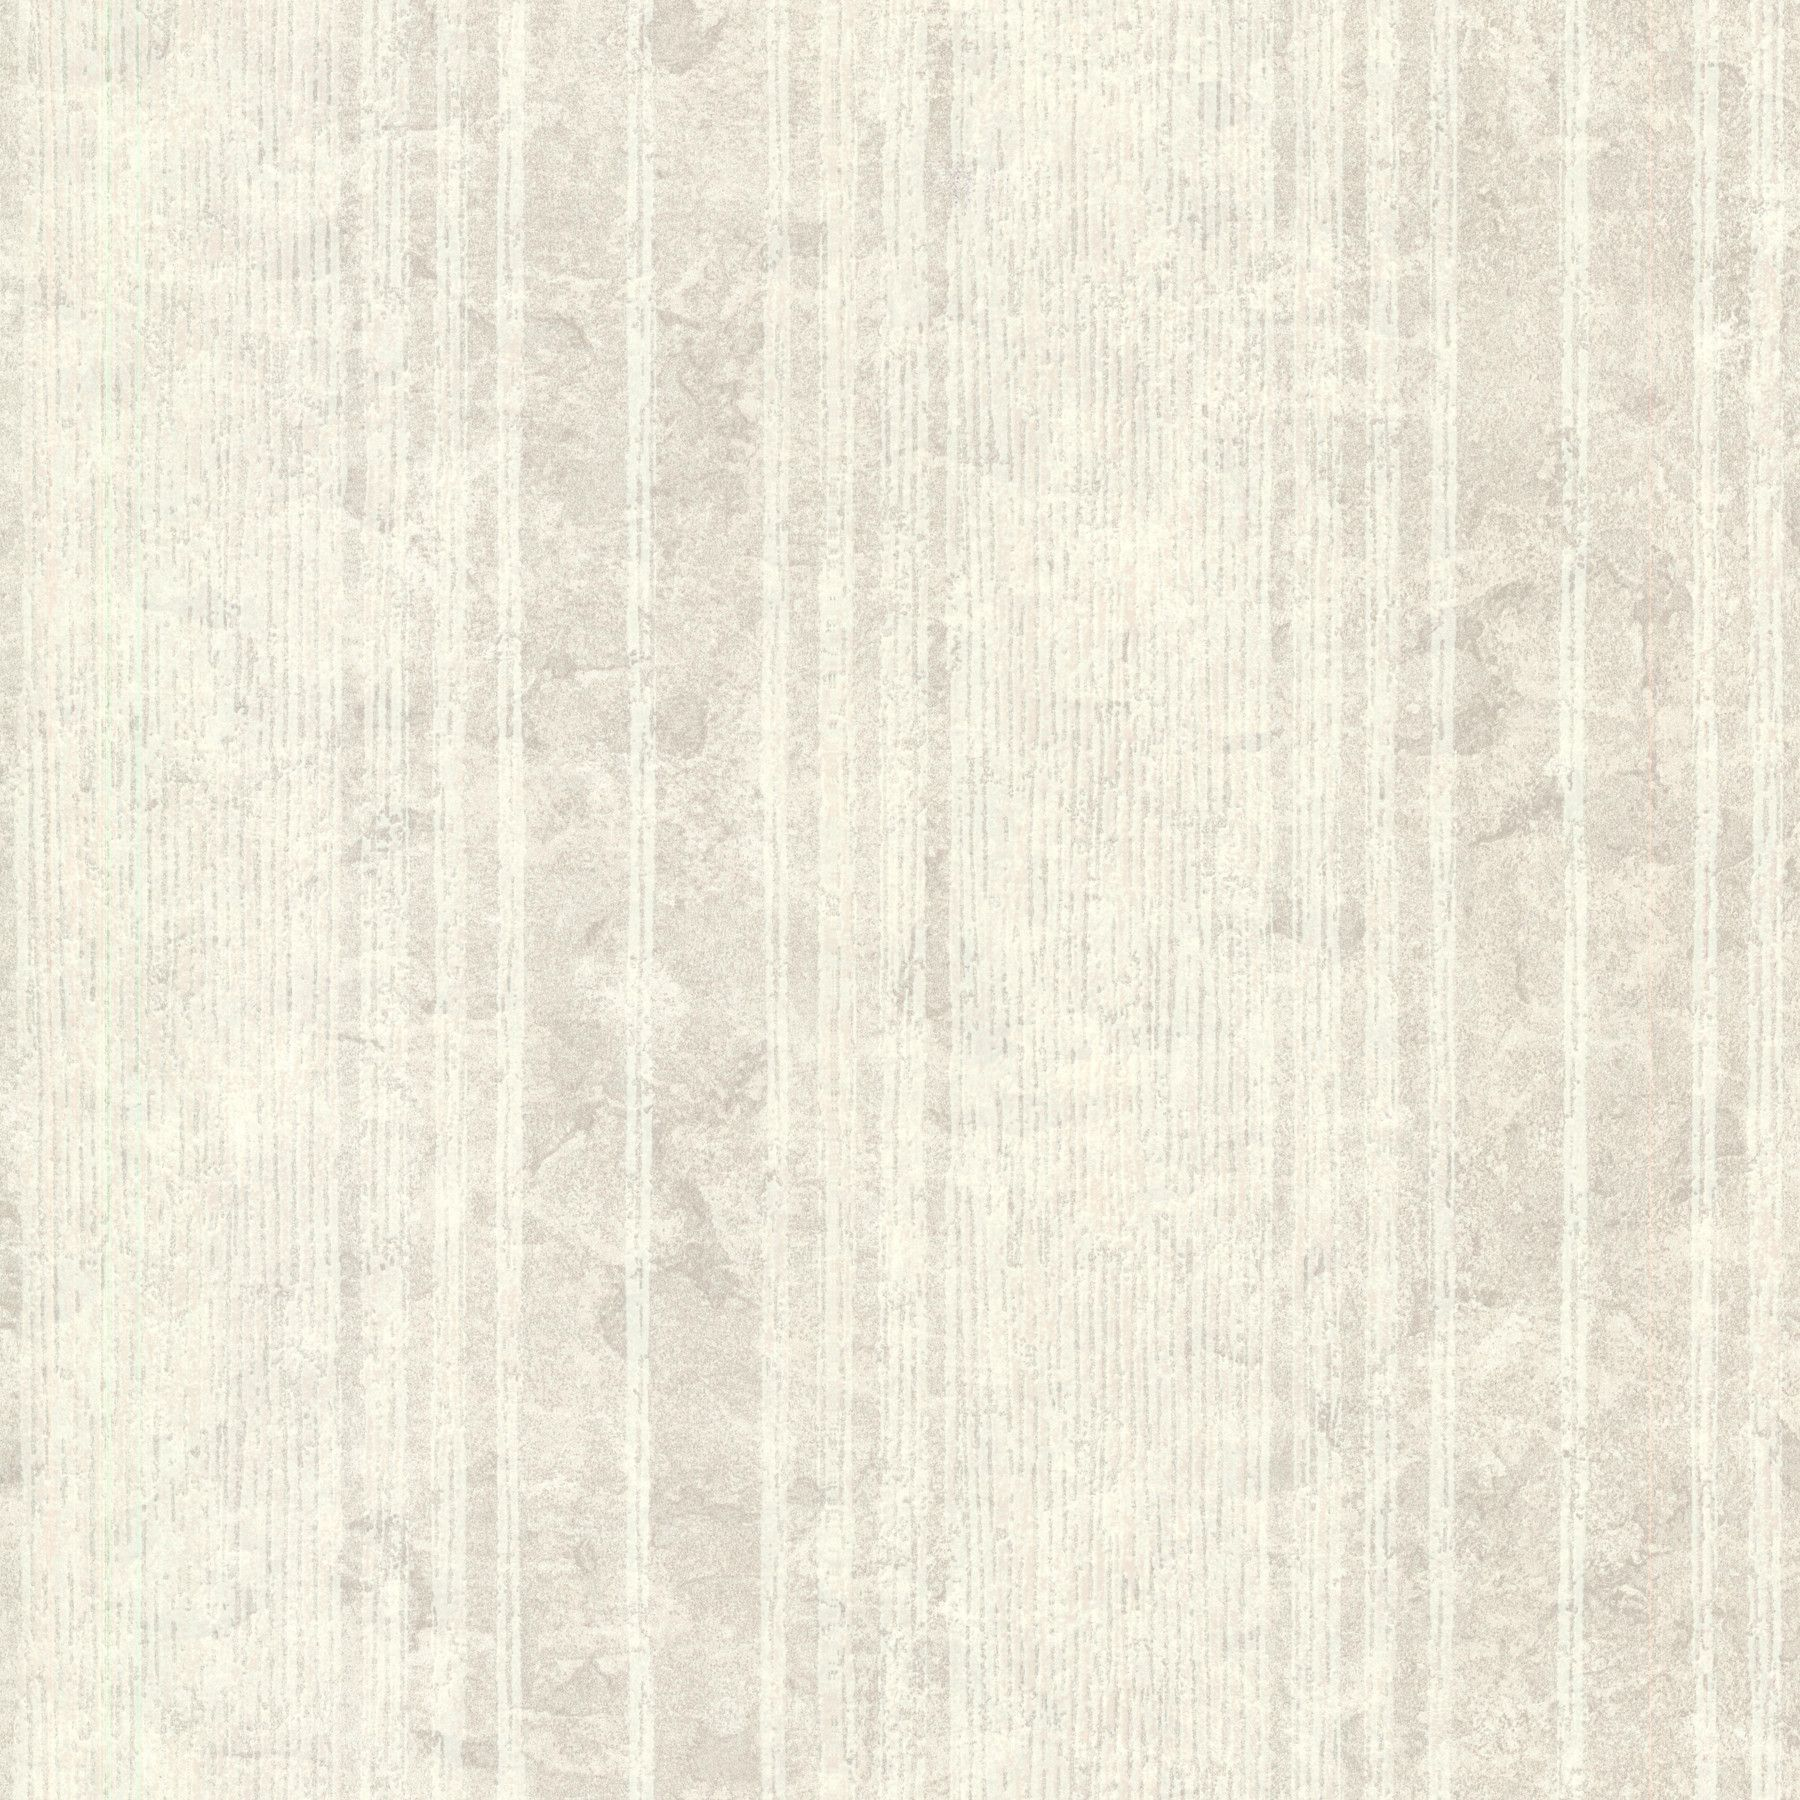 "Onyx Conetta 33' x 20.5"" Stripes 3D Embossed Wallpaper"